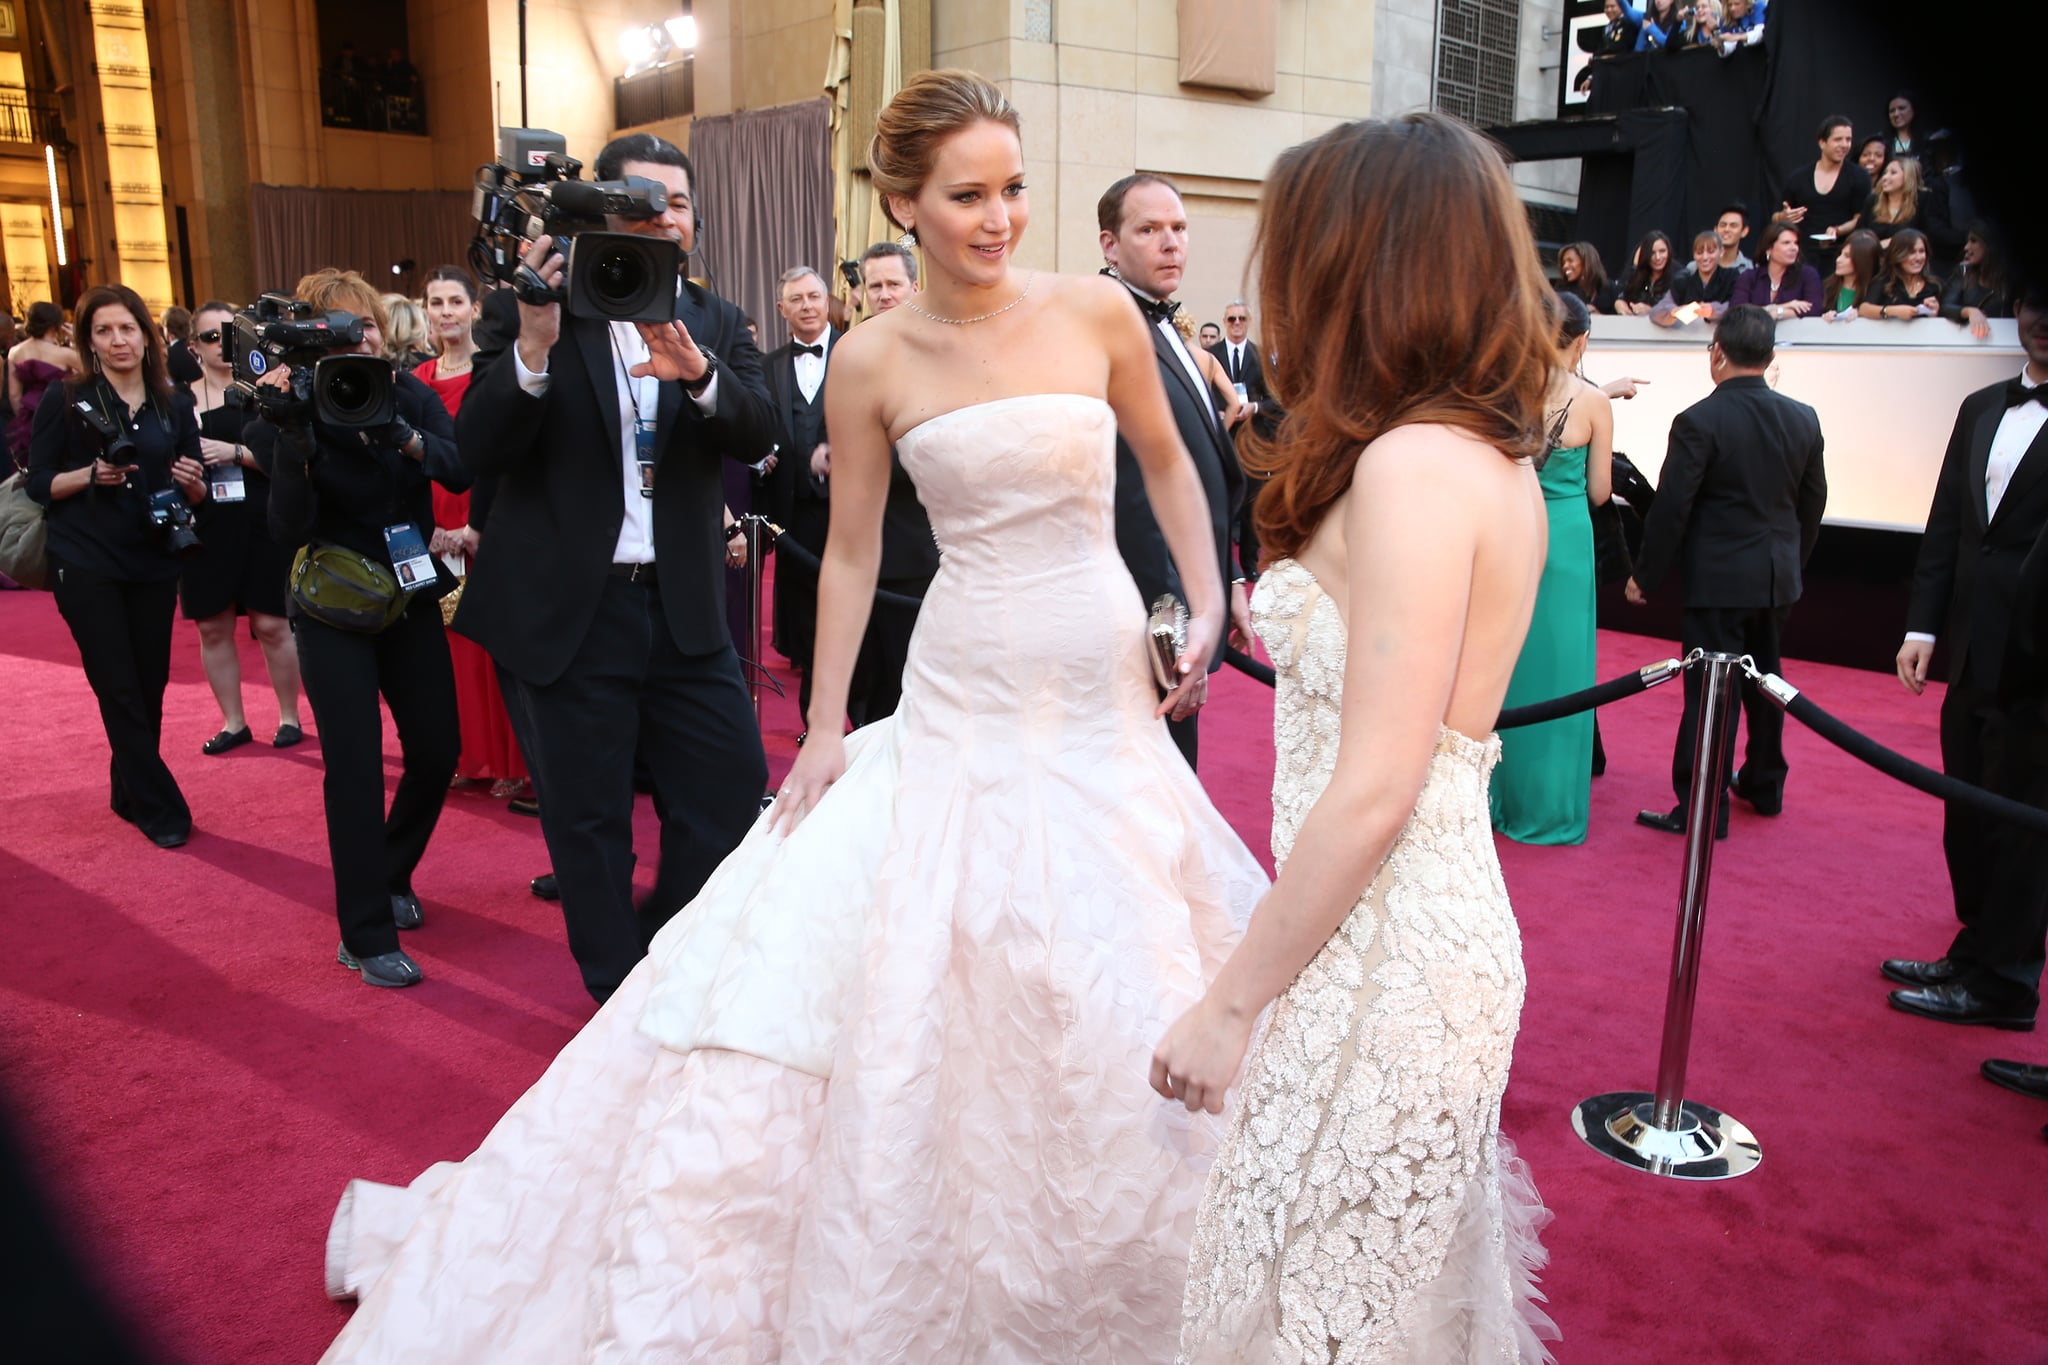 Jennifer Lawrence and Kristen Stewart on the red carpet at the Oscars 2013.